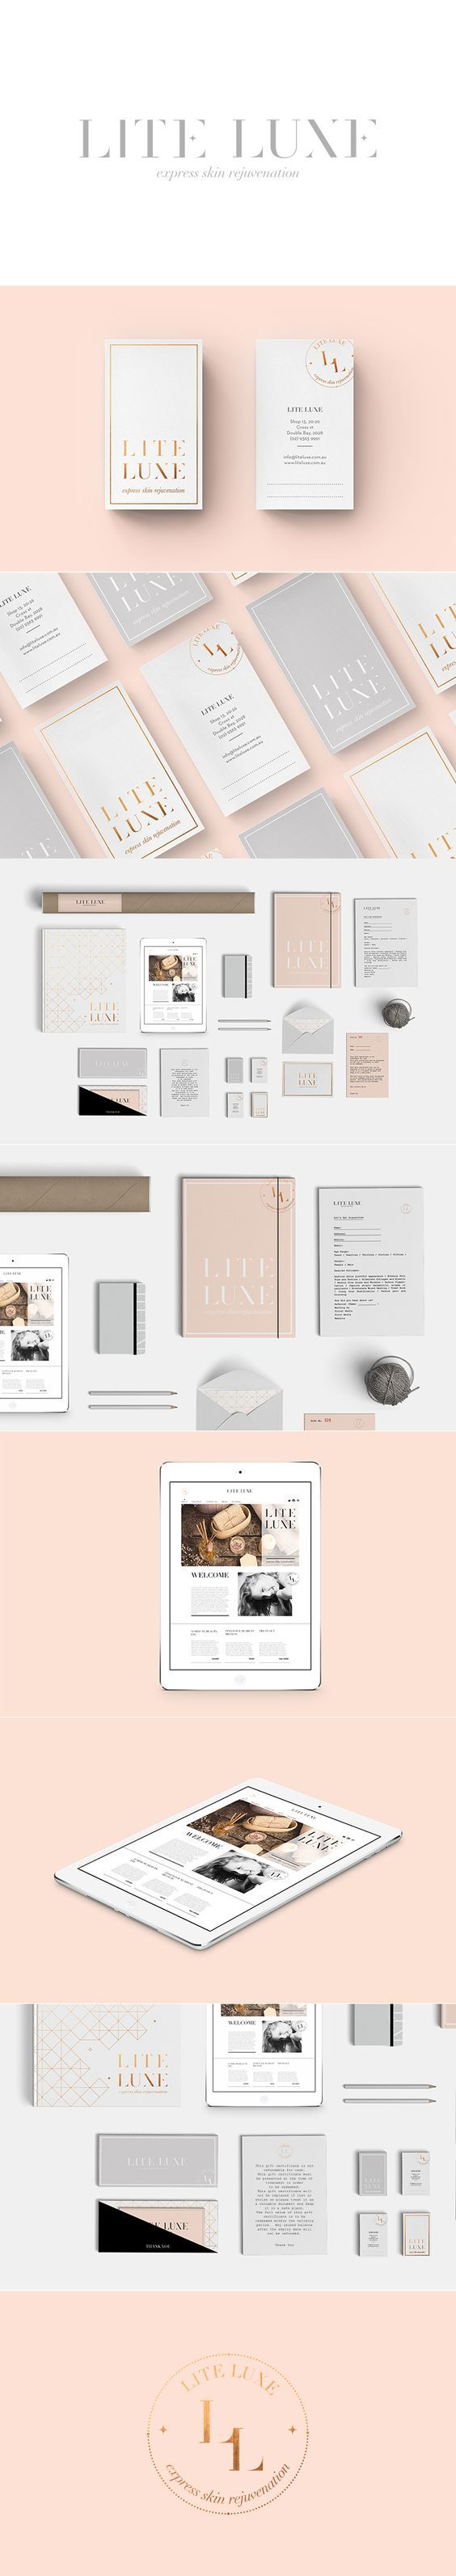 Lite Luze #stationery suite design. I love the pale colors, gold foil and simple design.: